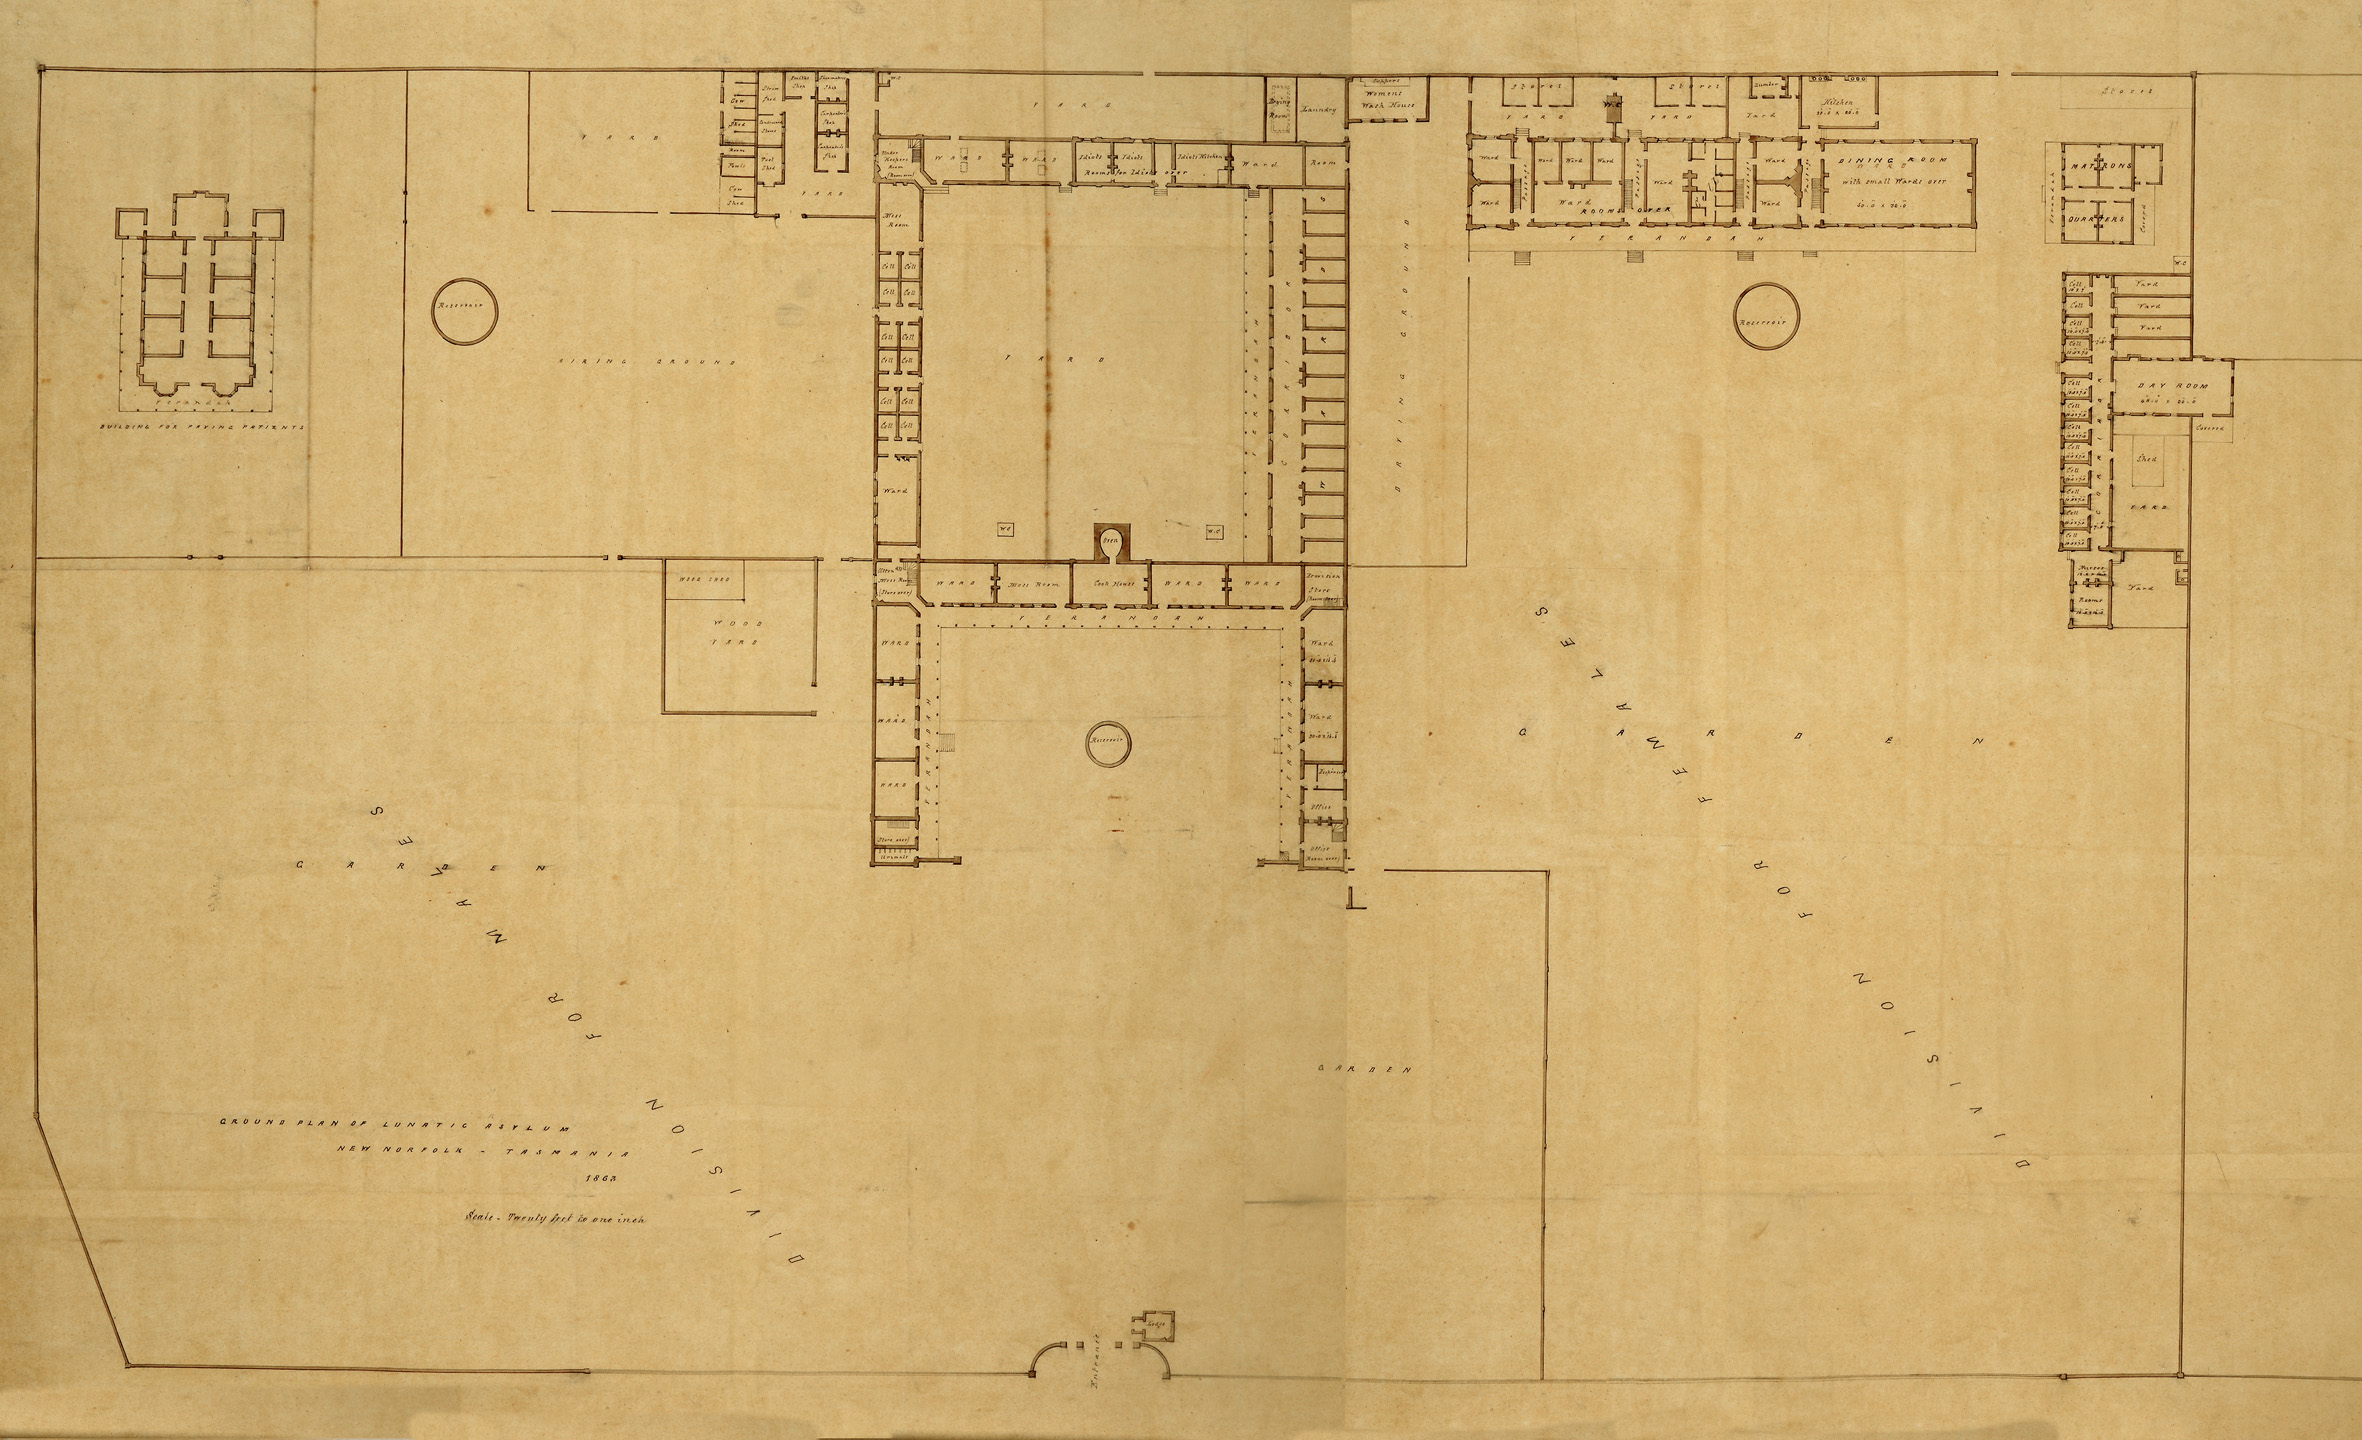 Maps plans and aerial views willow court history group mr1 1760 lunatic asylum new norfolk tasmania 1863sml malvernweather Images